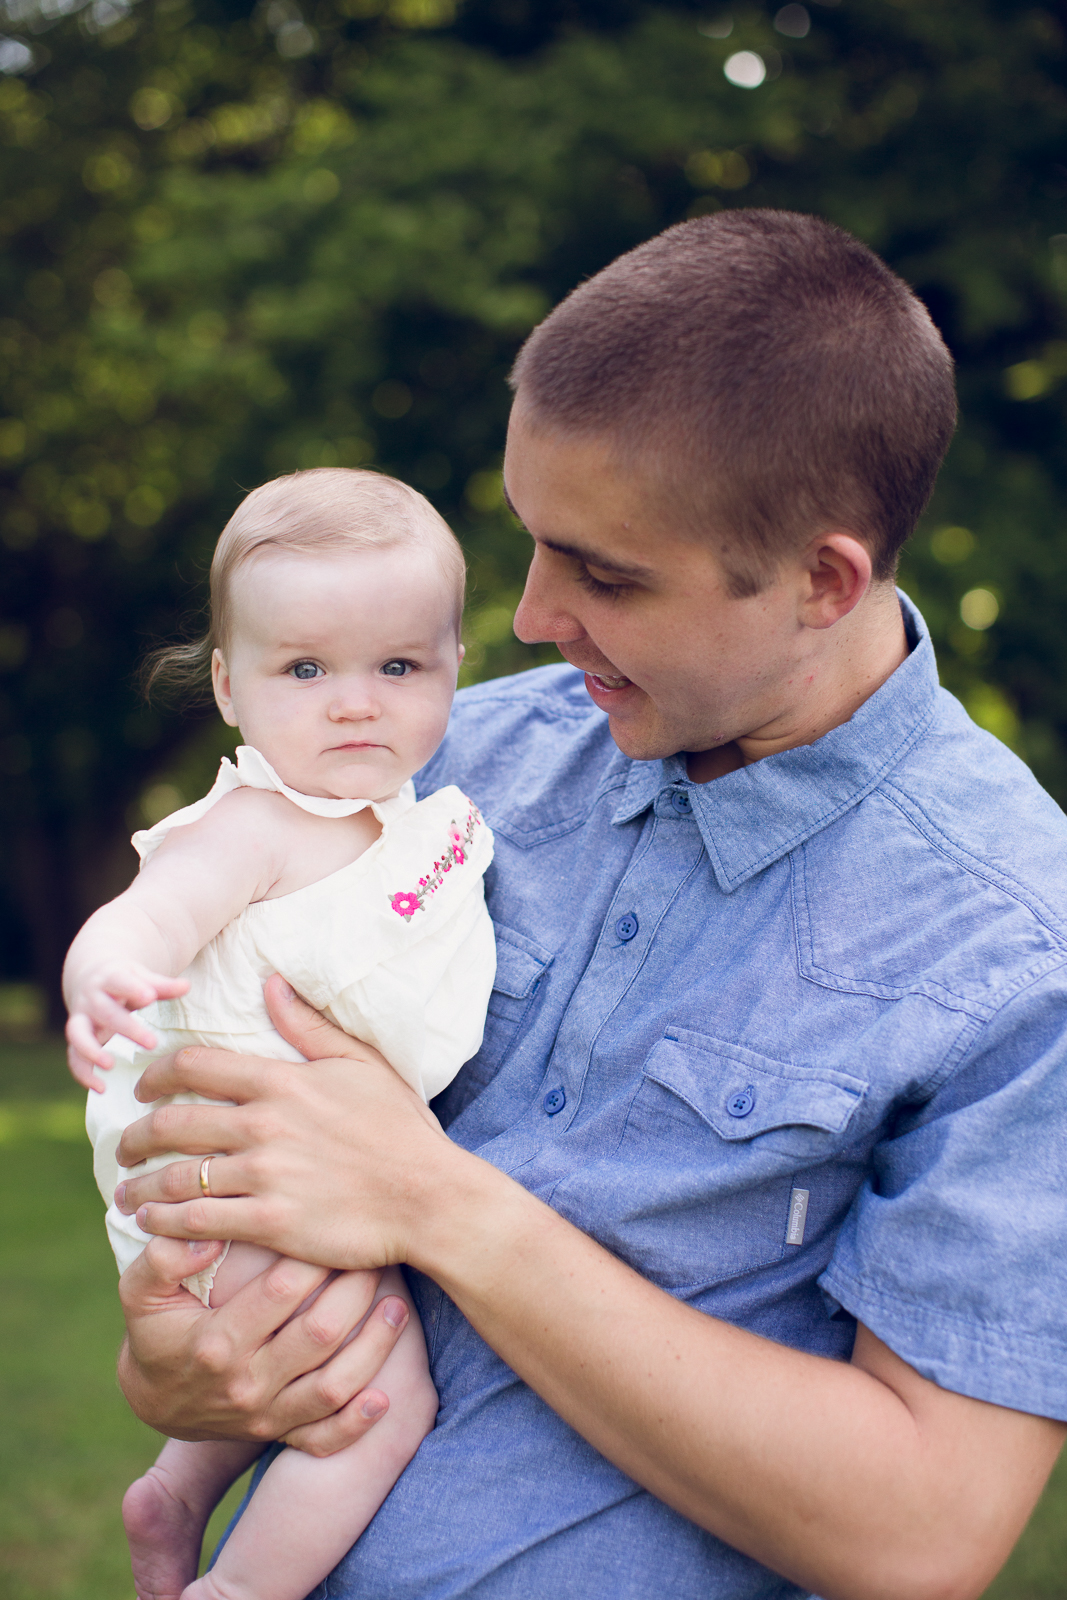 Hattie 6 month photographer lafayette indiana milestone photographer-2.jpg